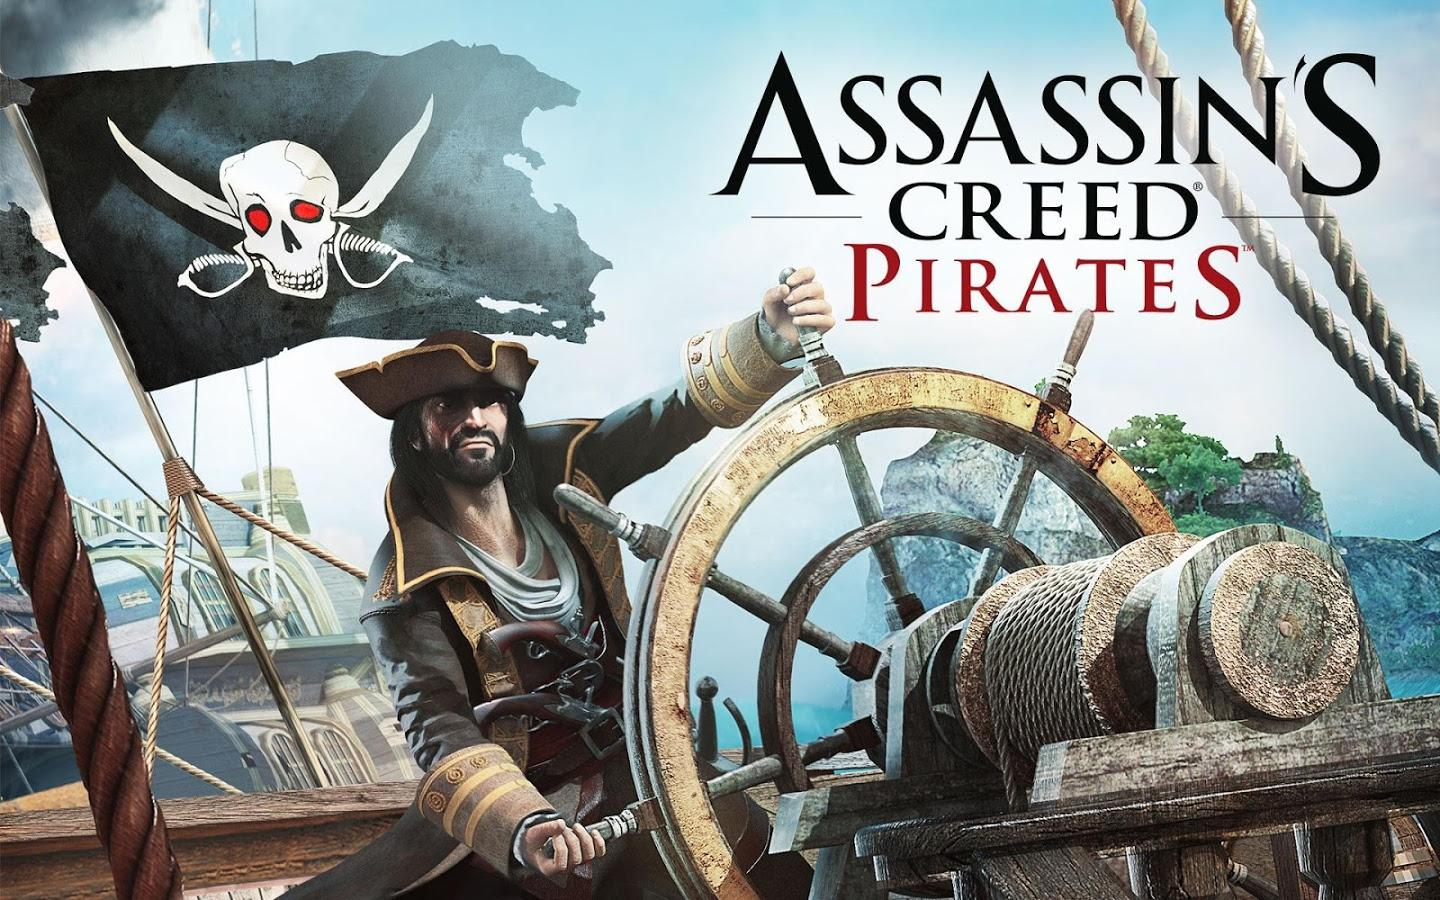 Скачать assassins creed pirates на компьютер торрент